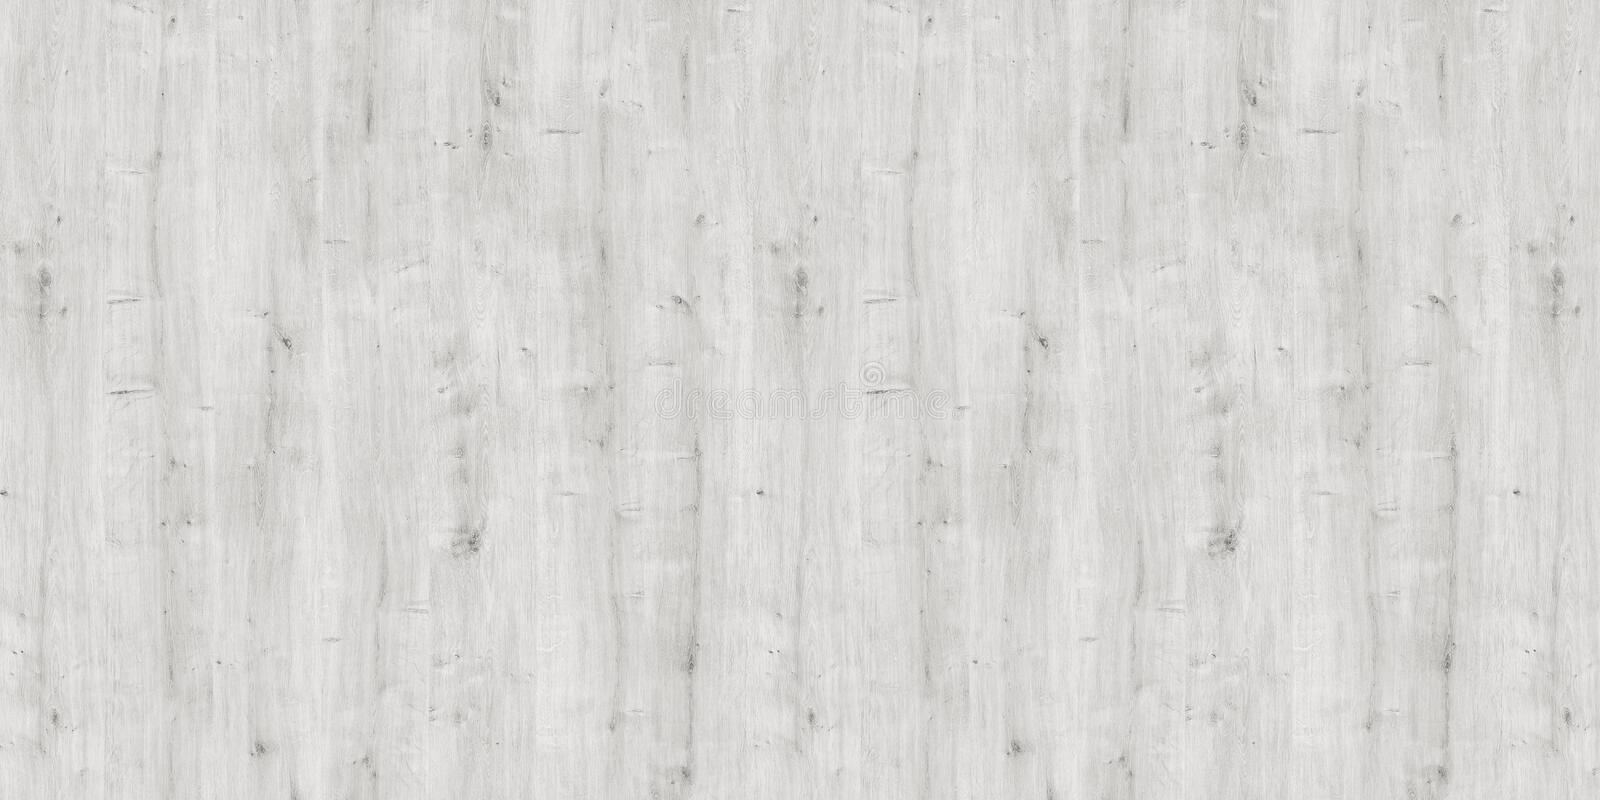 Washed white wooden planks, wood texture background royalty free stock photo